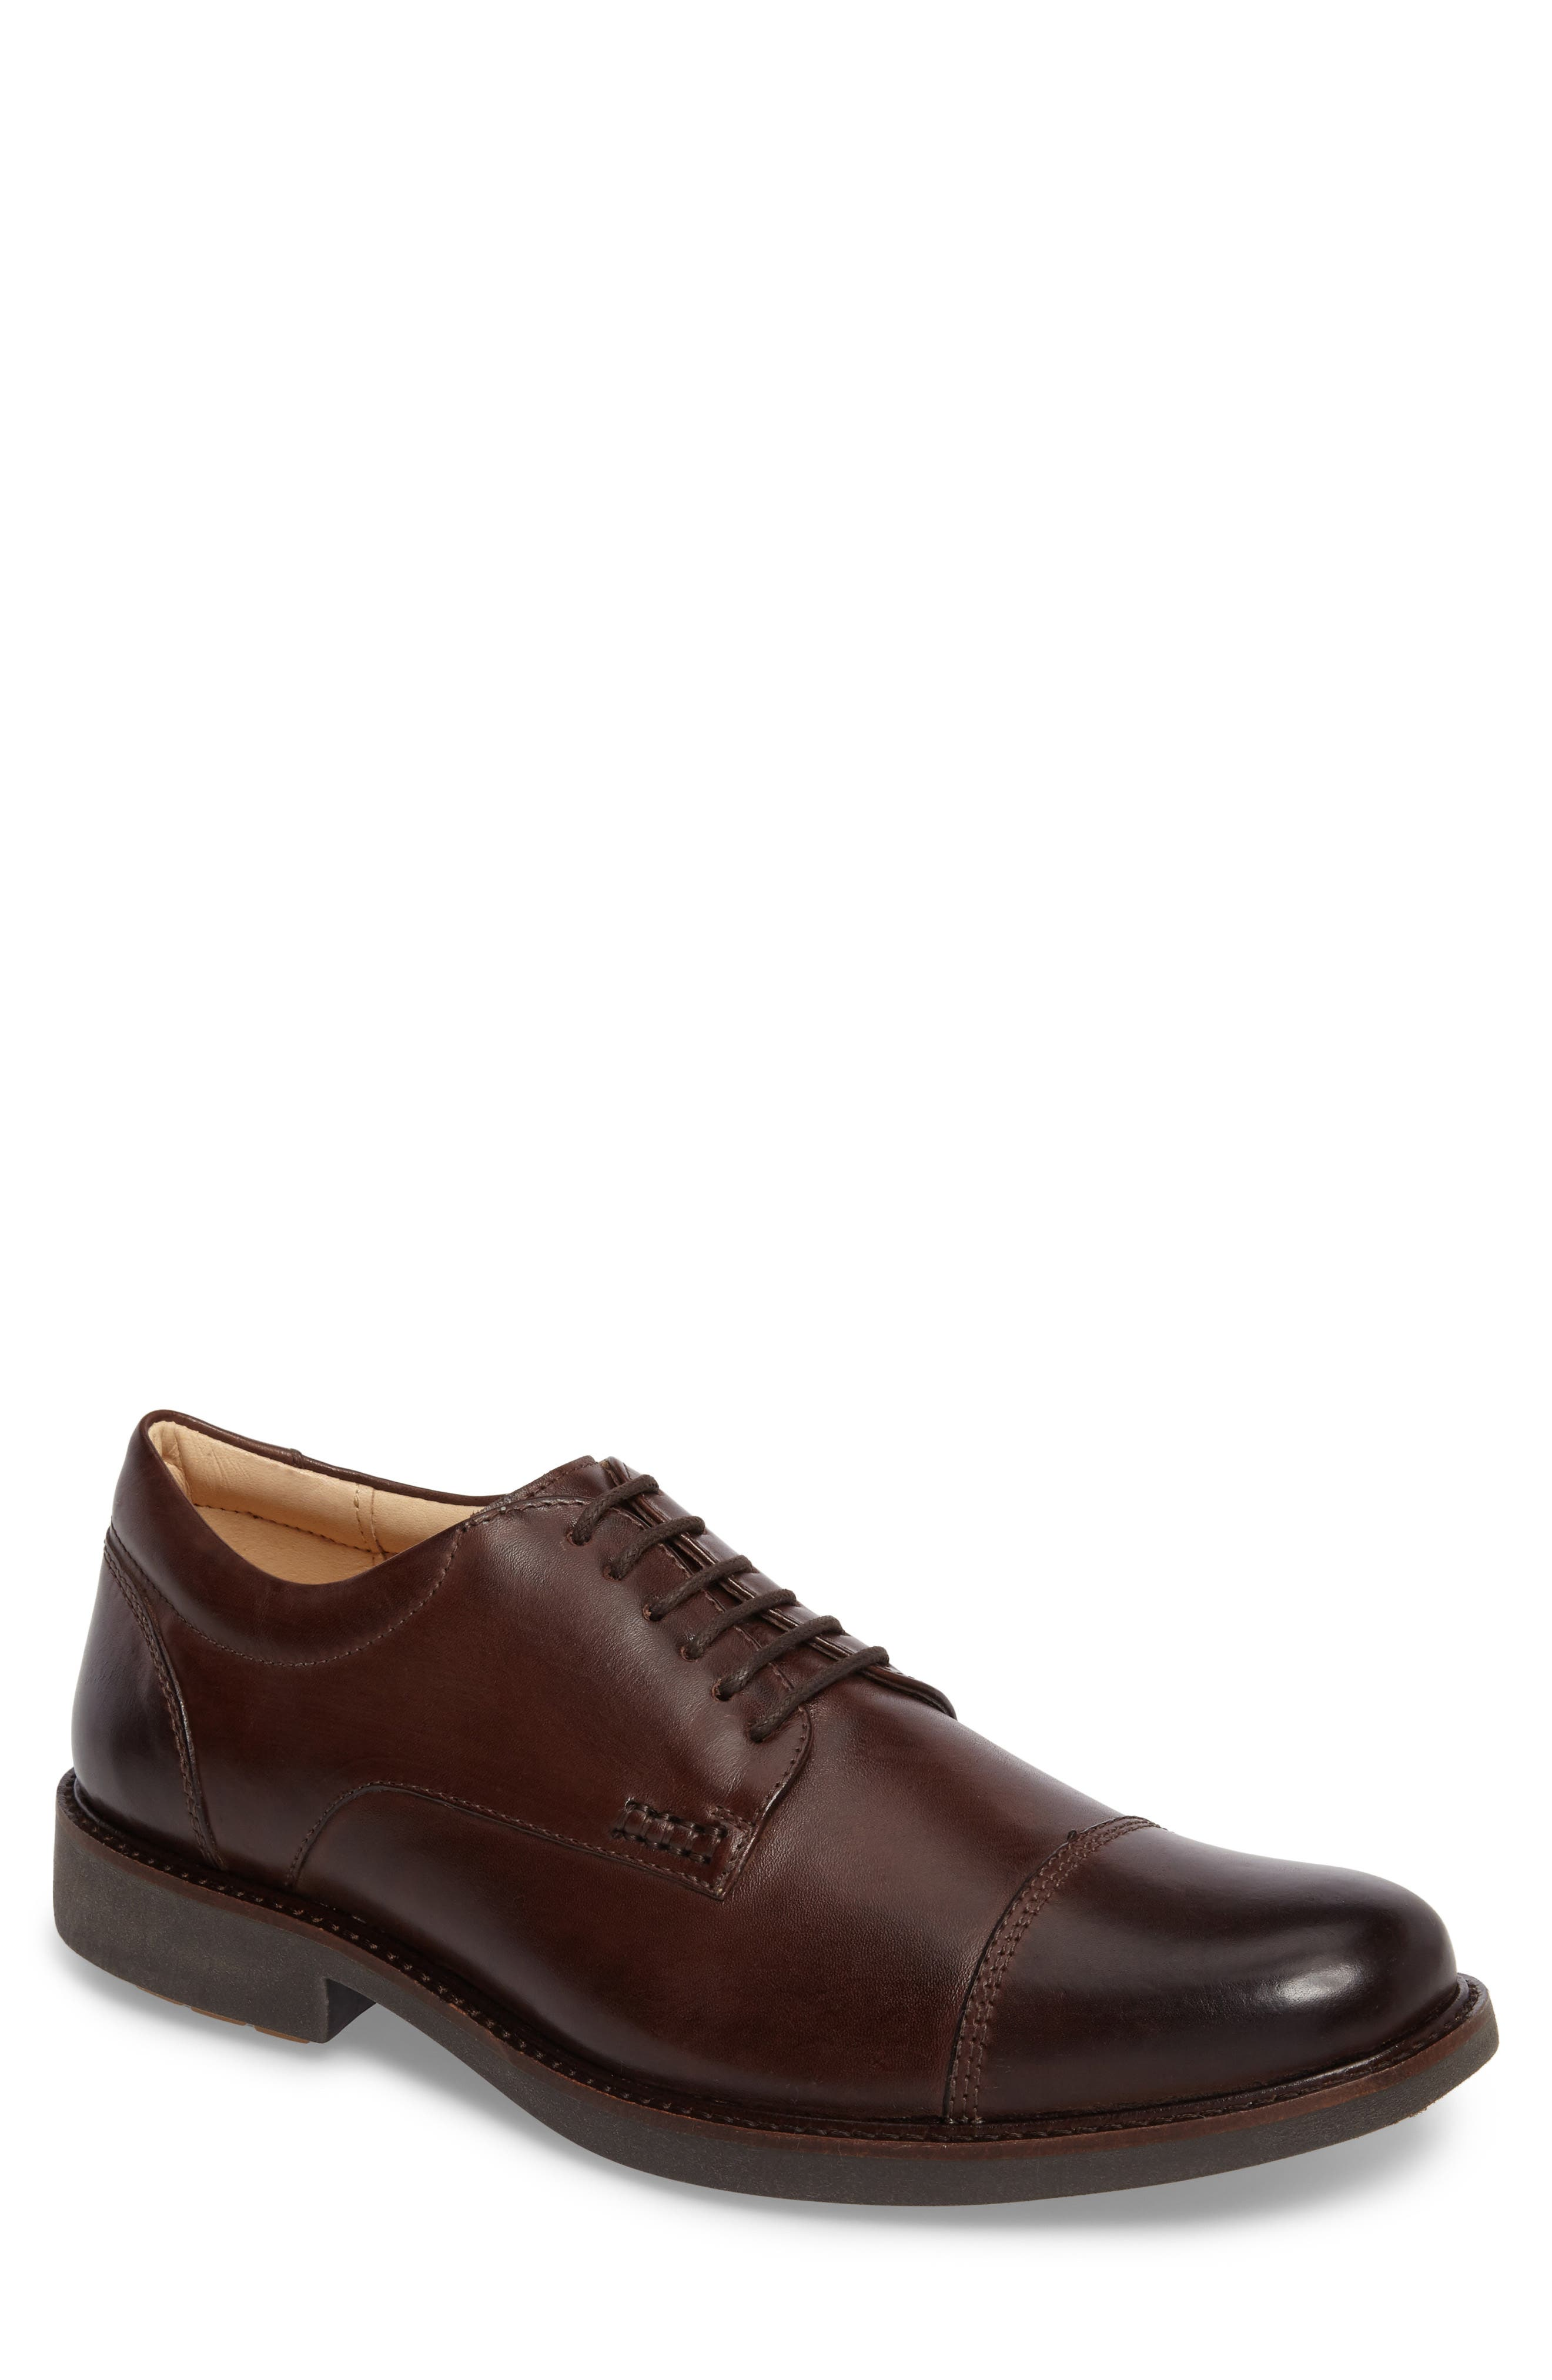 Anatomic & Co Jordania Cap Toe Derby (Men)